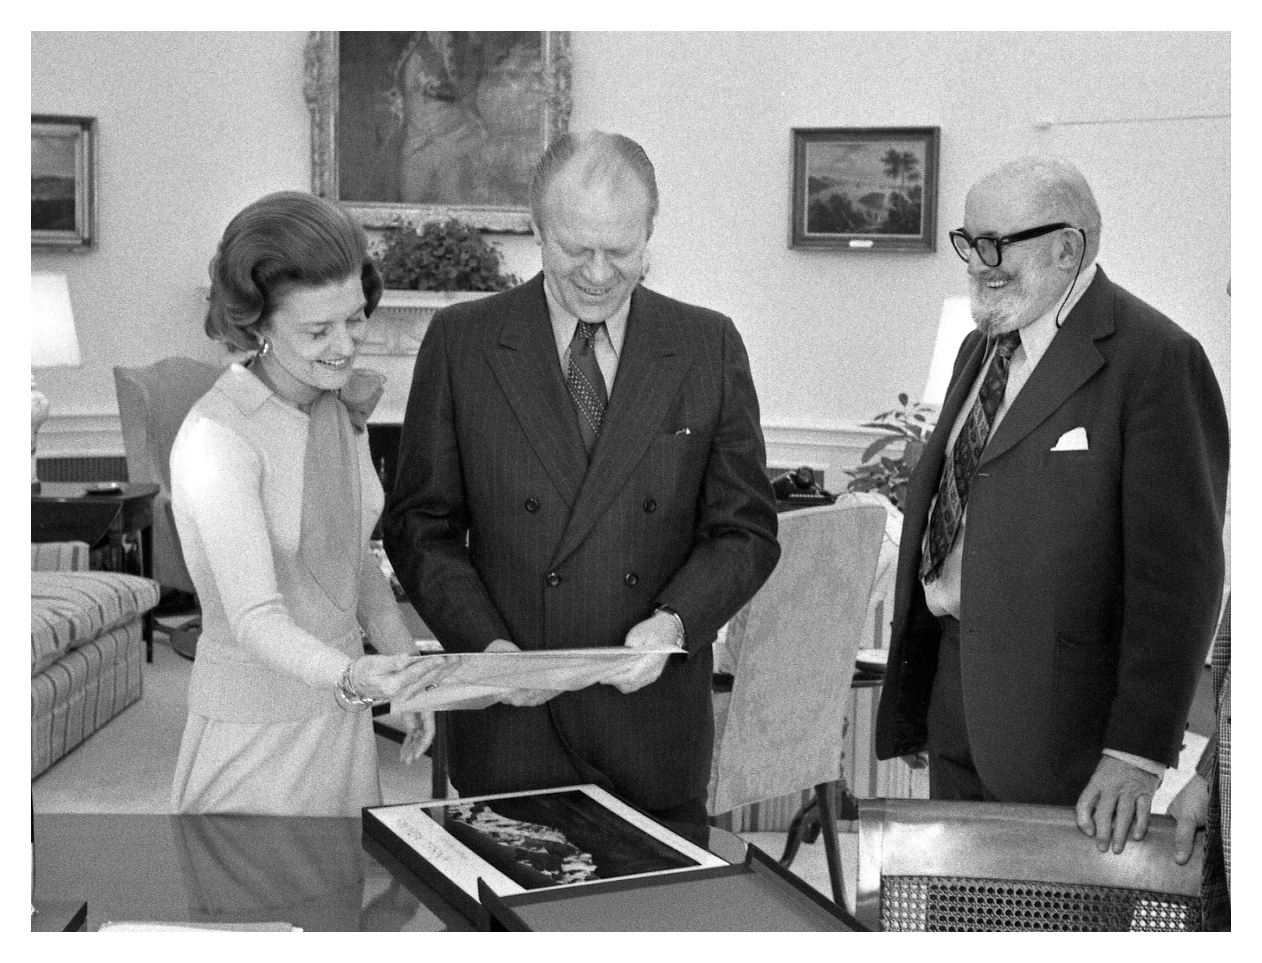 President Gerald Ford and First Lady Betty Ford viewing photographs with Adams 1975